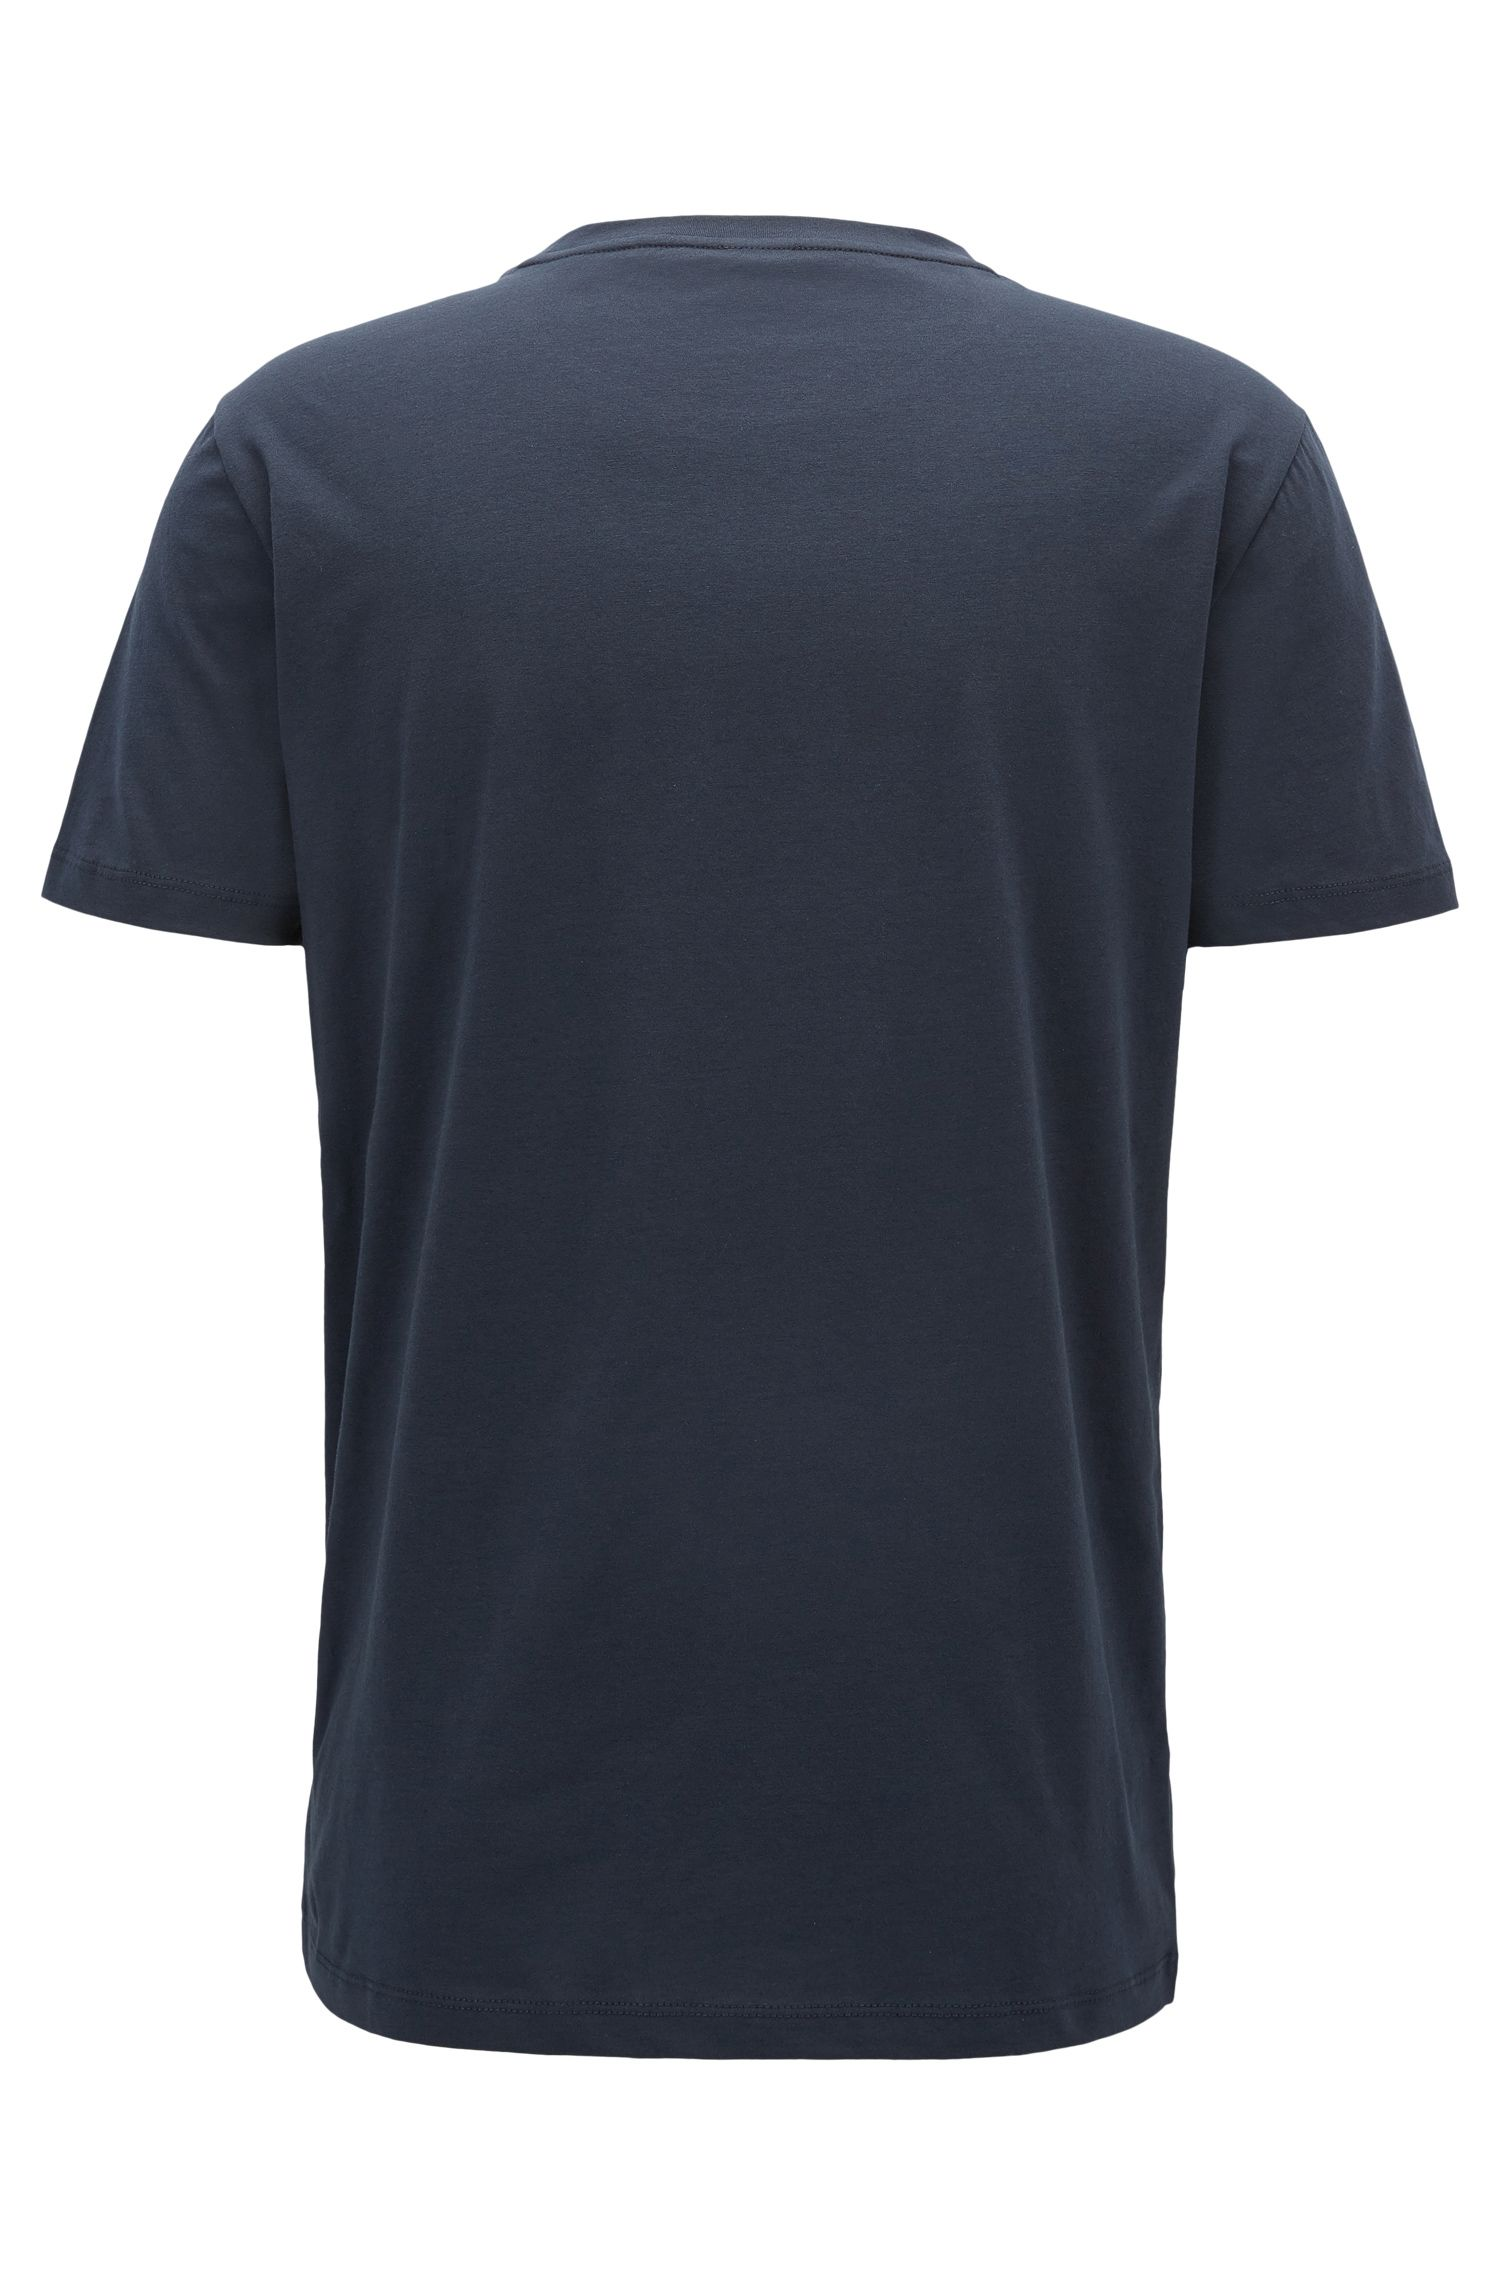 Cotton T-shirt in a relaxed fit with logo